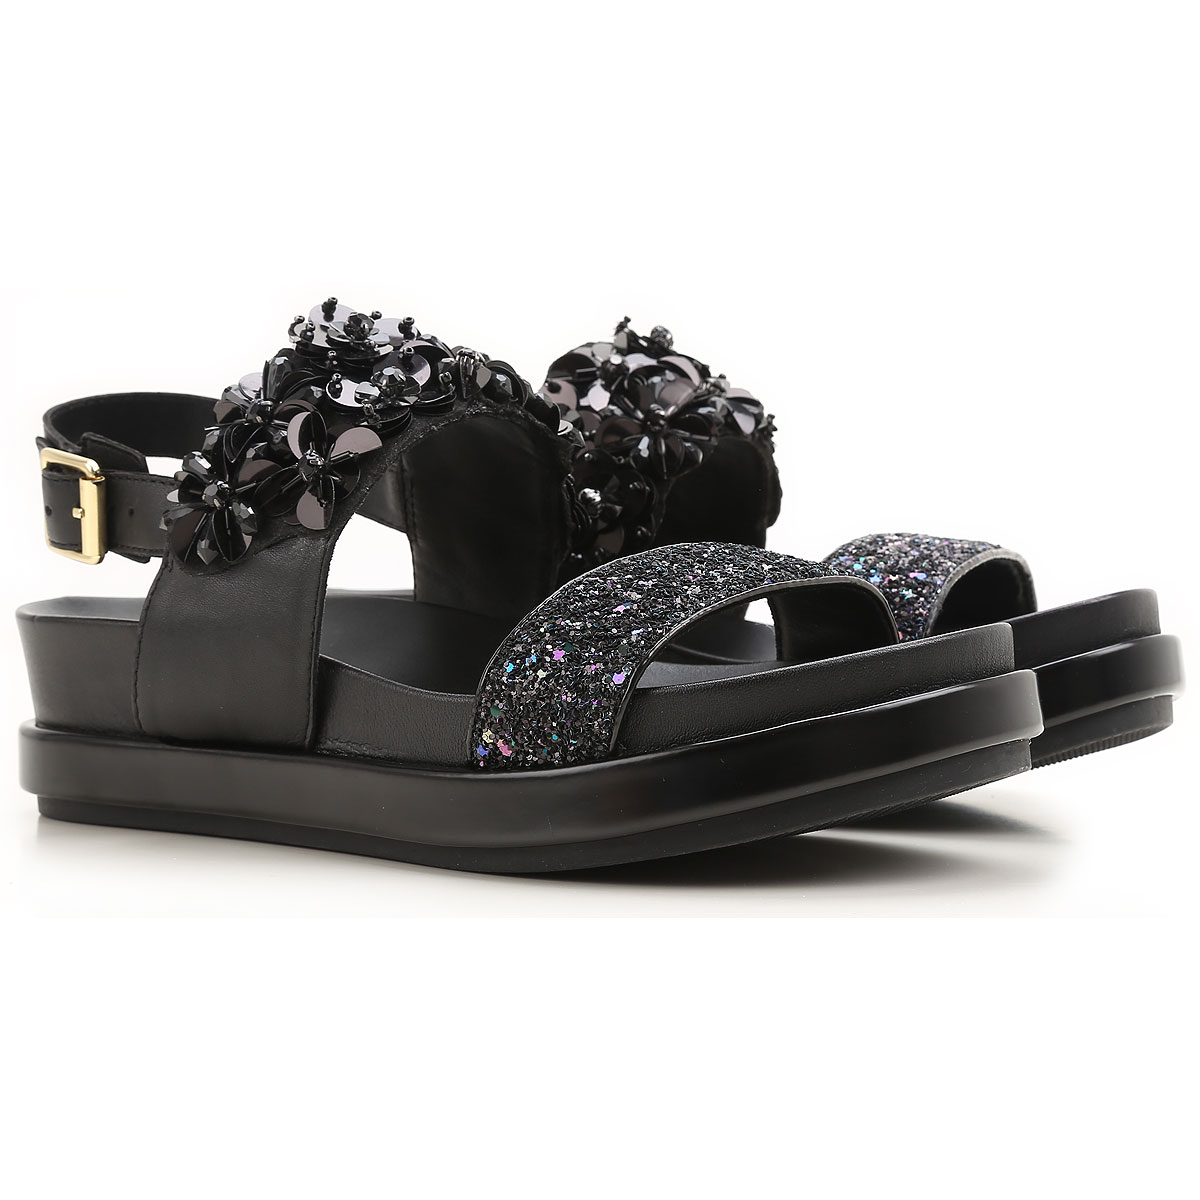 Image of Ash Womens Shoes On Sale in Outlet, Black, Leather, 2017, 6 7